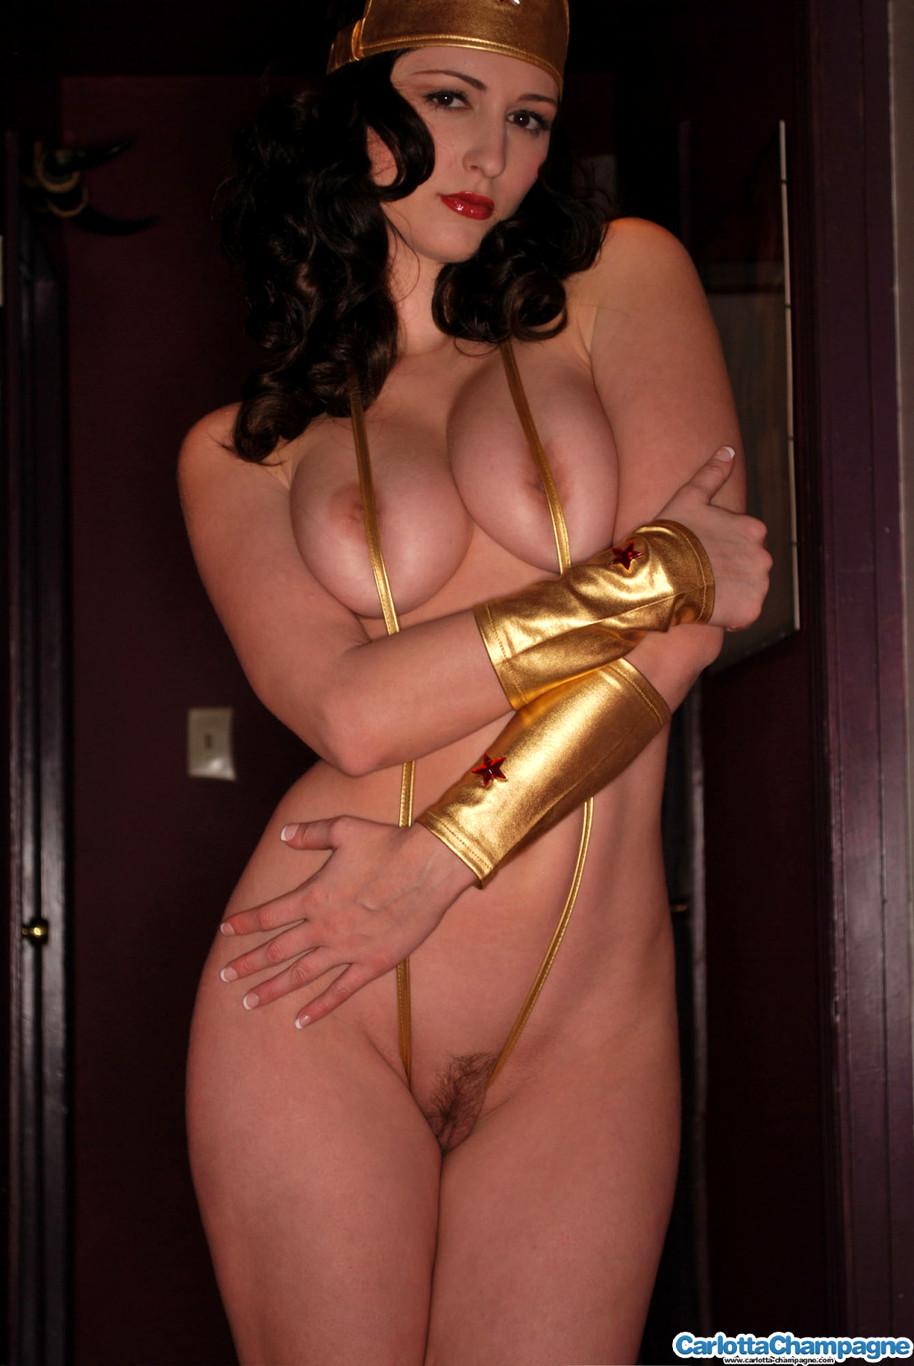 Cosplay Girls Porn Pictures, XXX Sex Photo Gallery